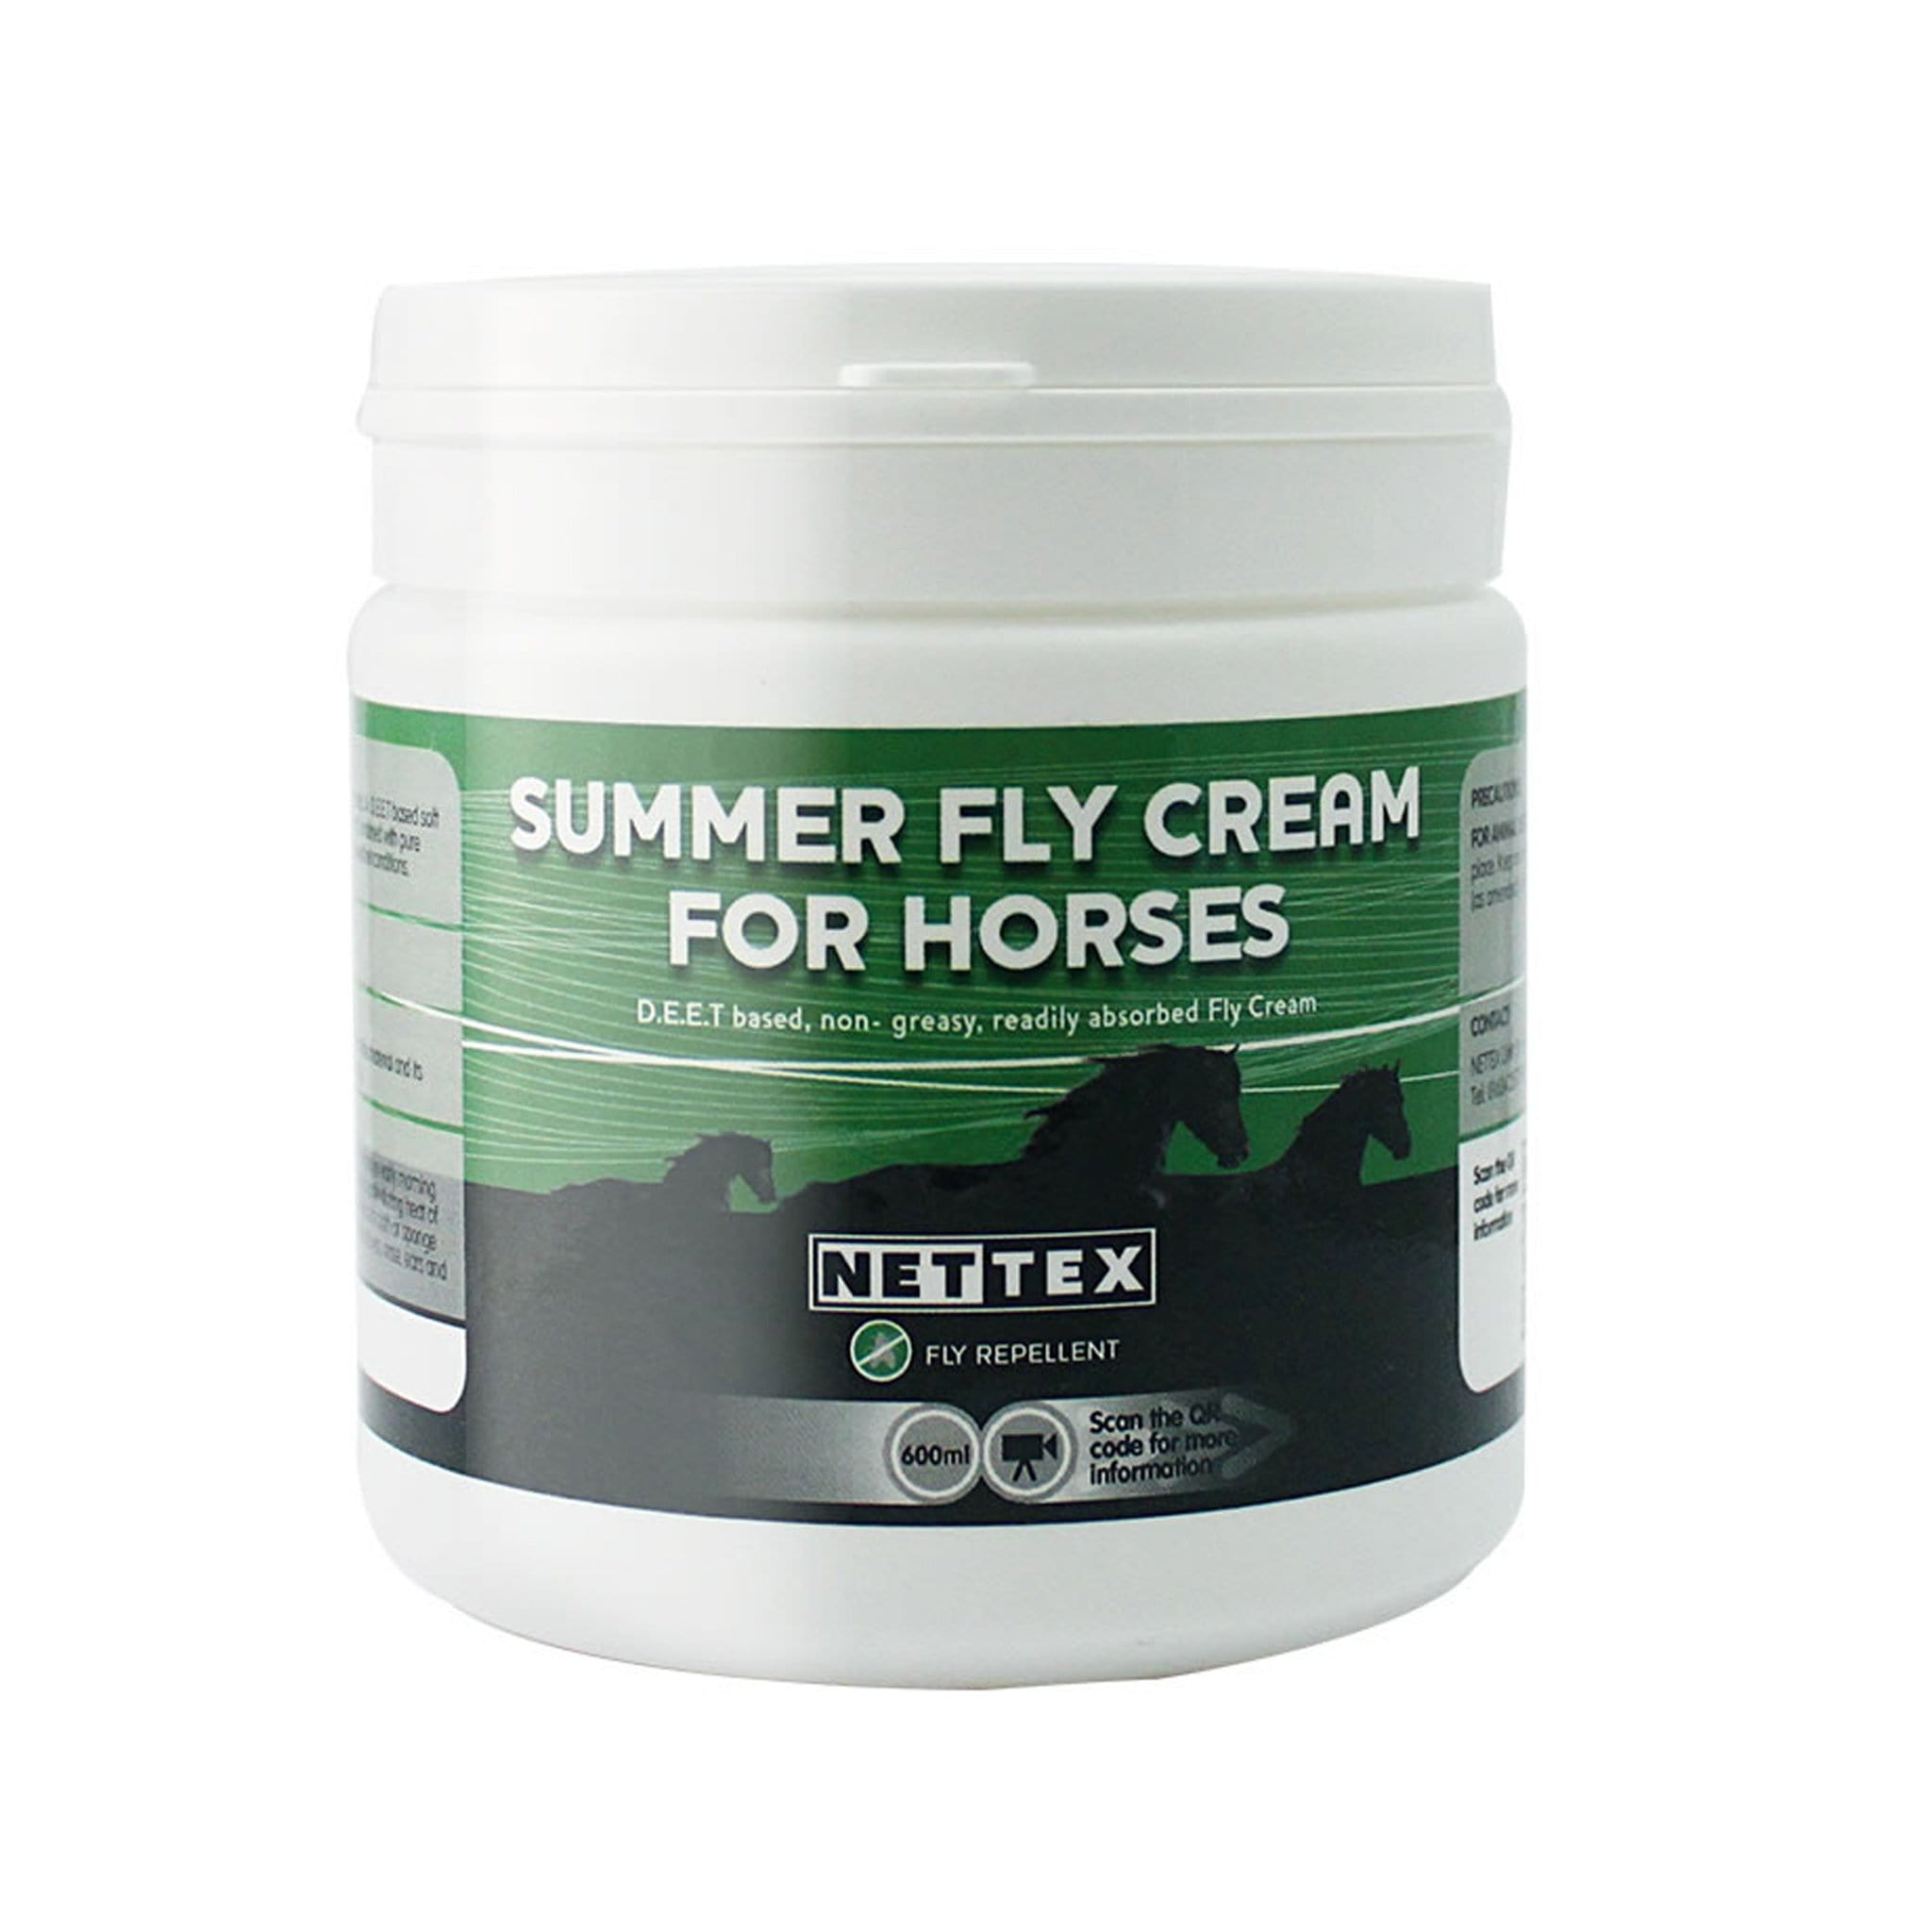 Nettex Equine Summer Fly Cream 600ML Tub NET0075